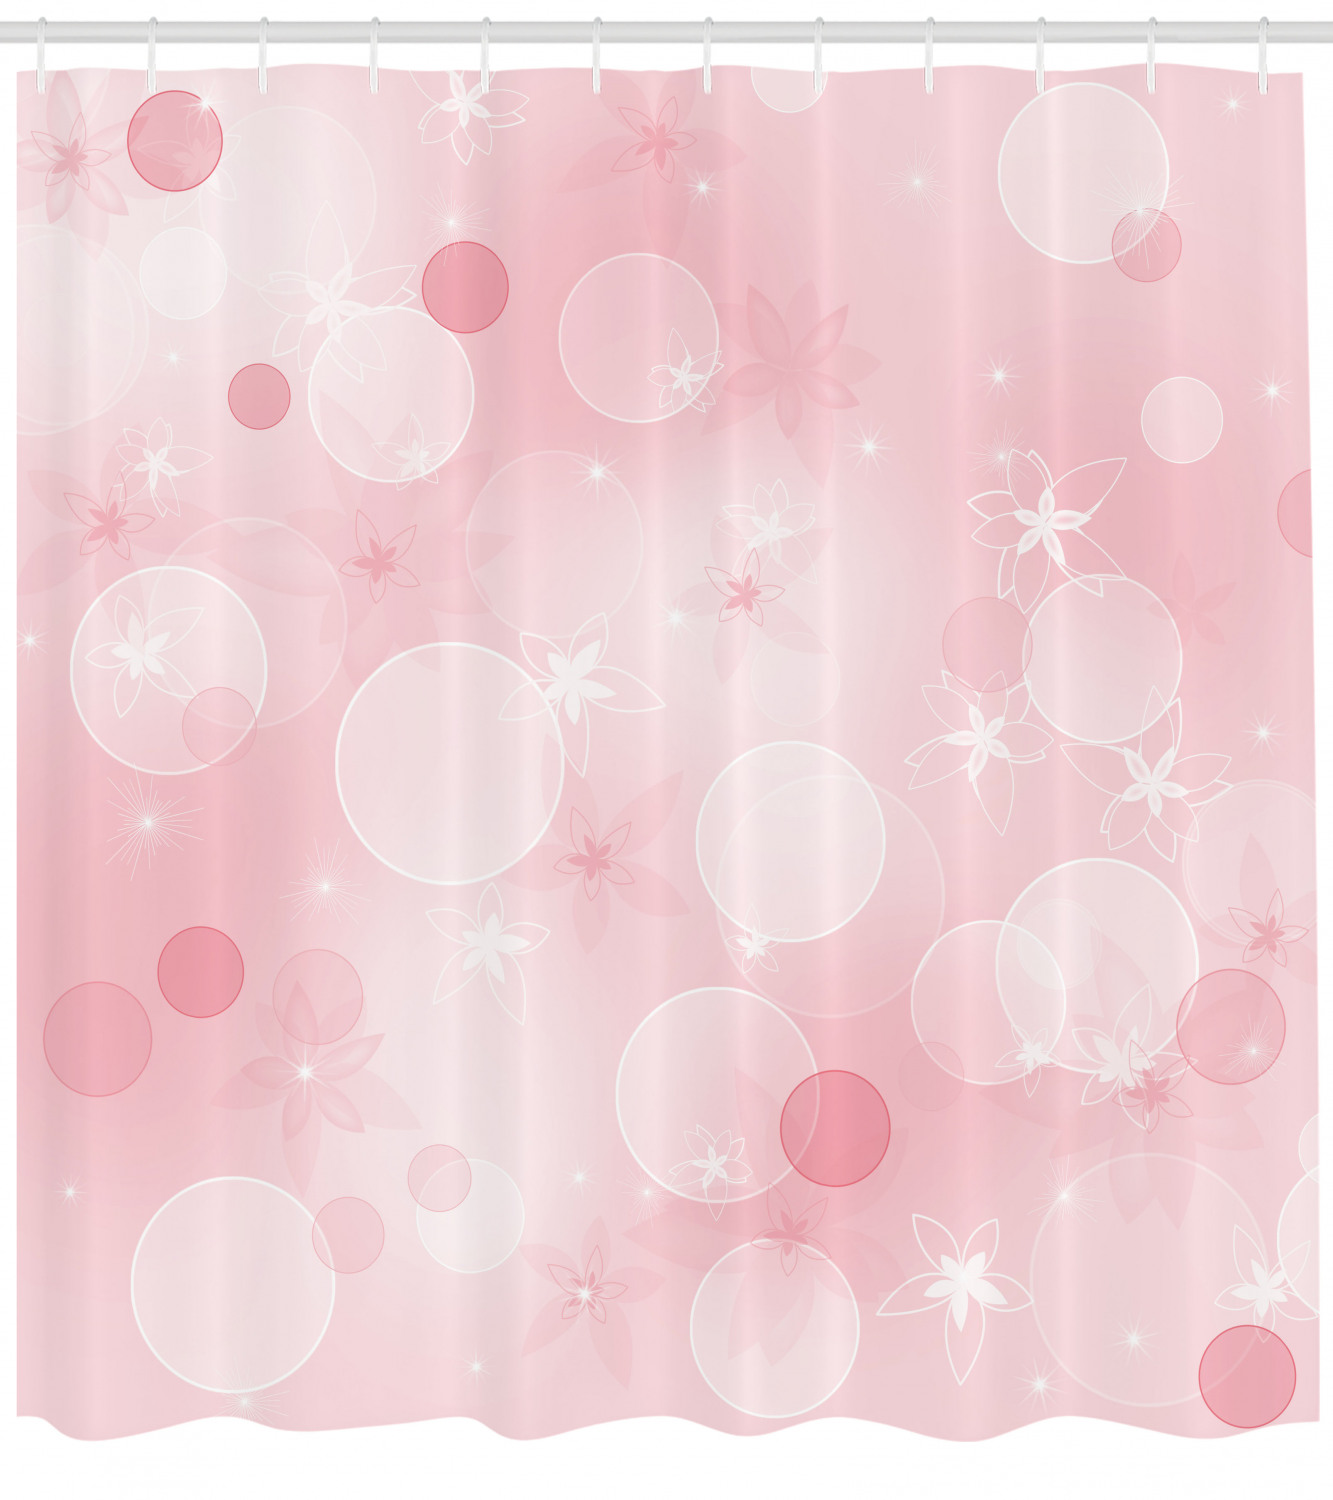 Light Pink Shower Curtain Floral Background With Hazy Bubbles And